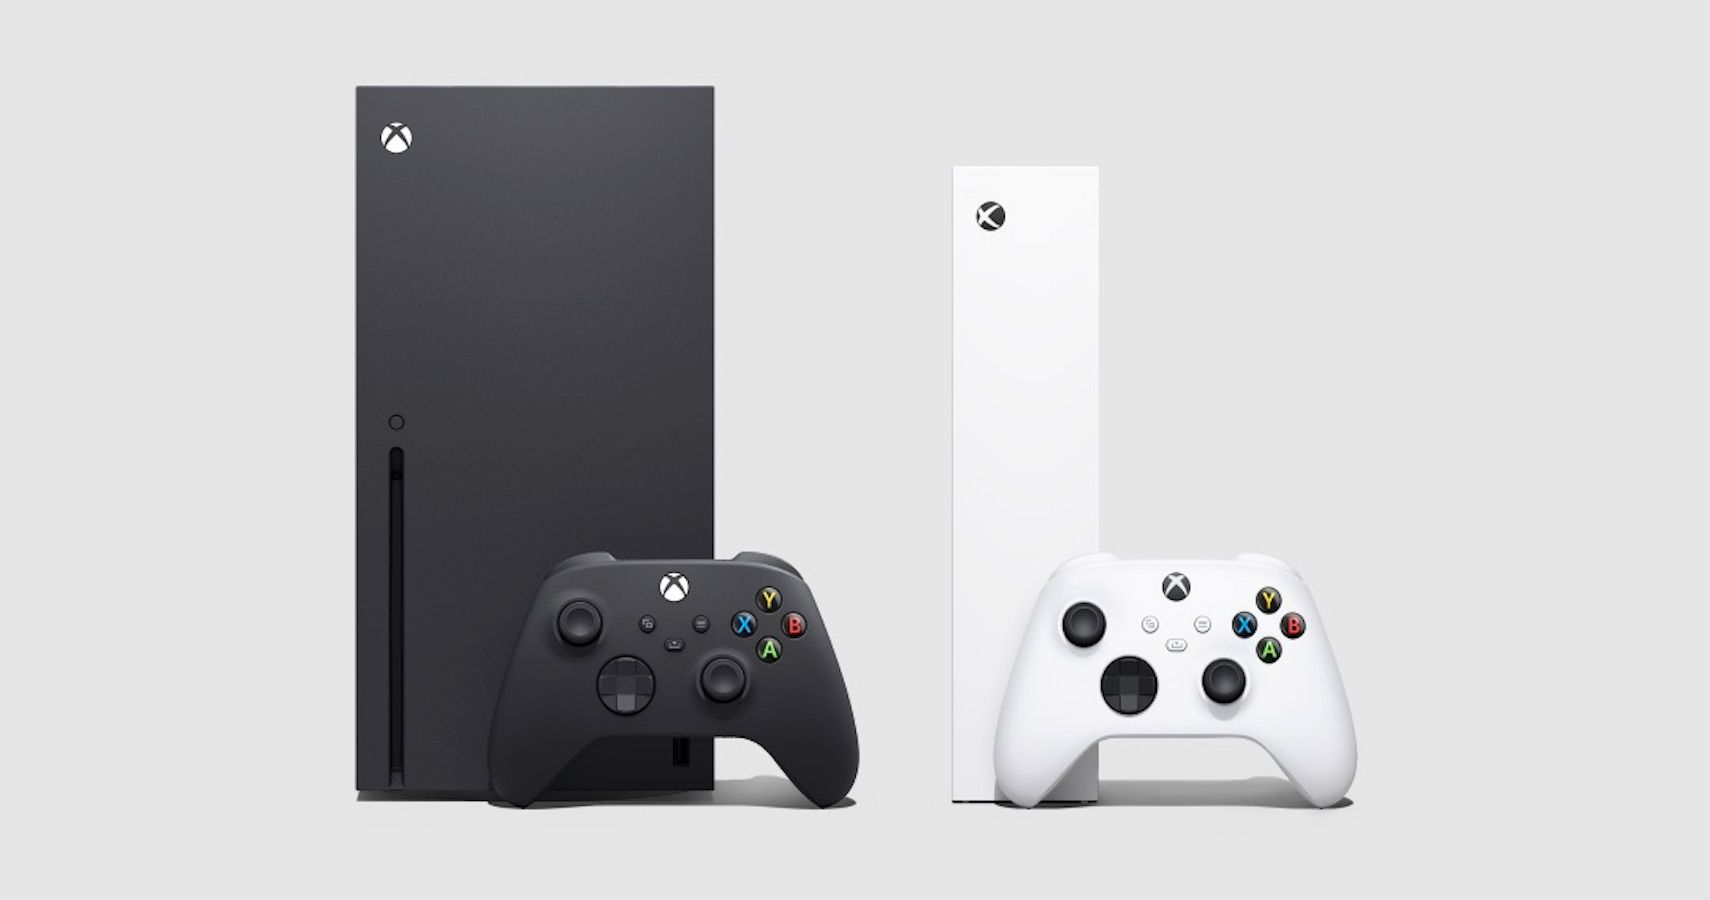 Microsoft Gaming Revenue Increases 51% With Xbox Series X|S Launches